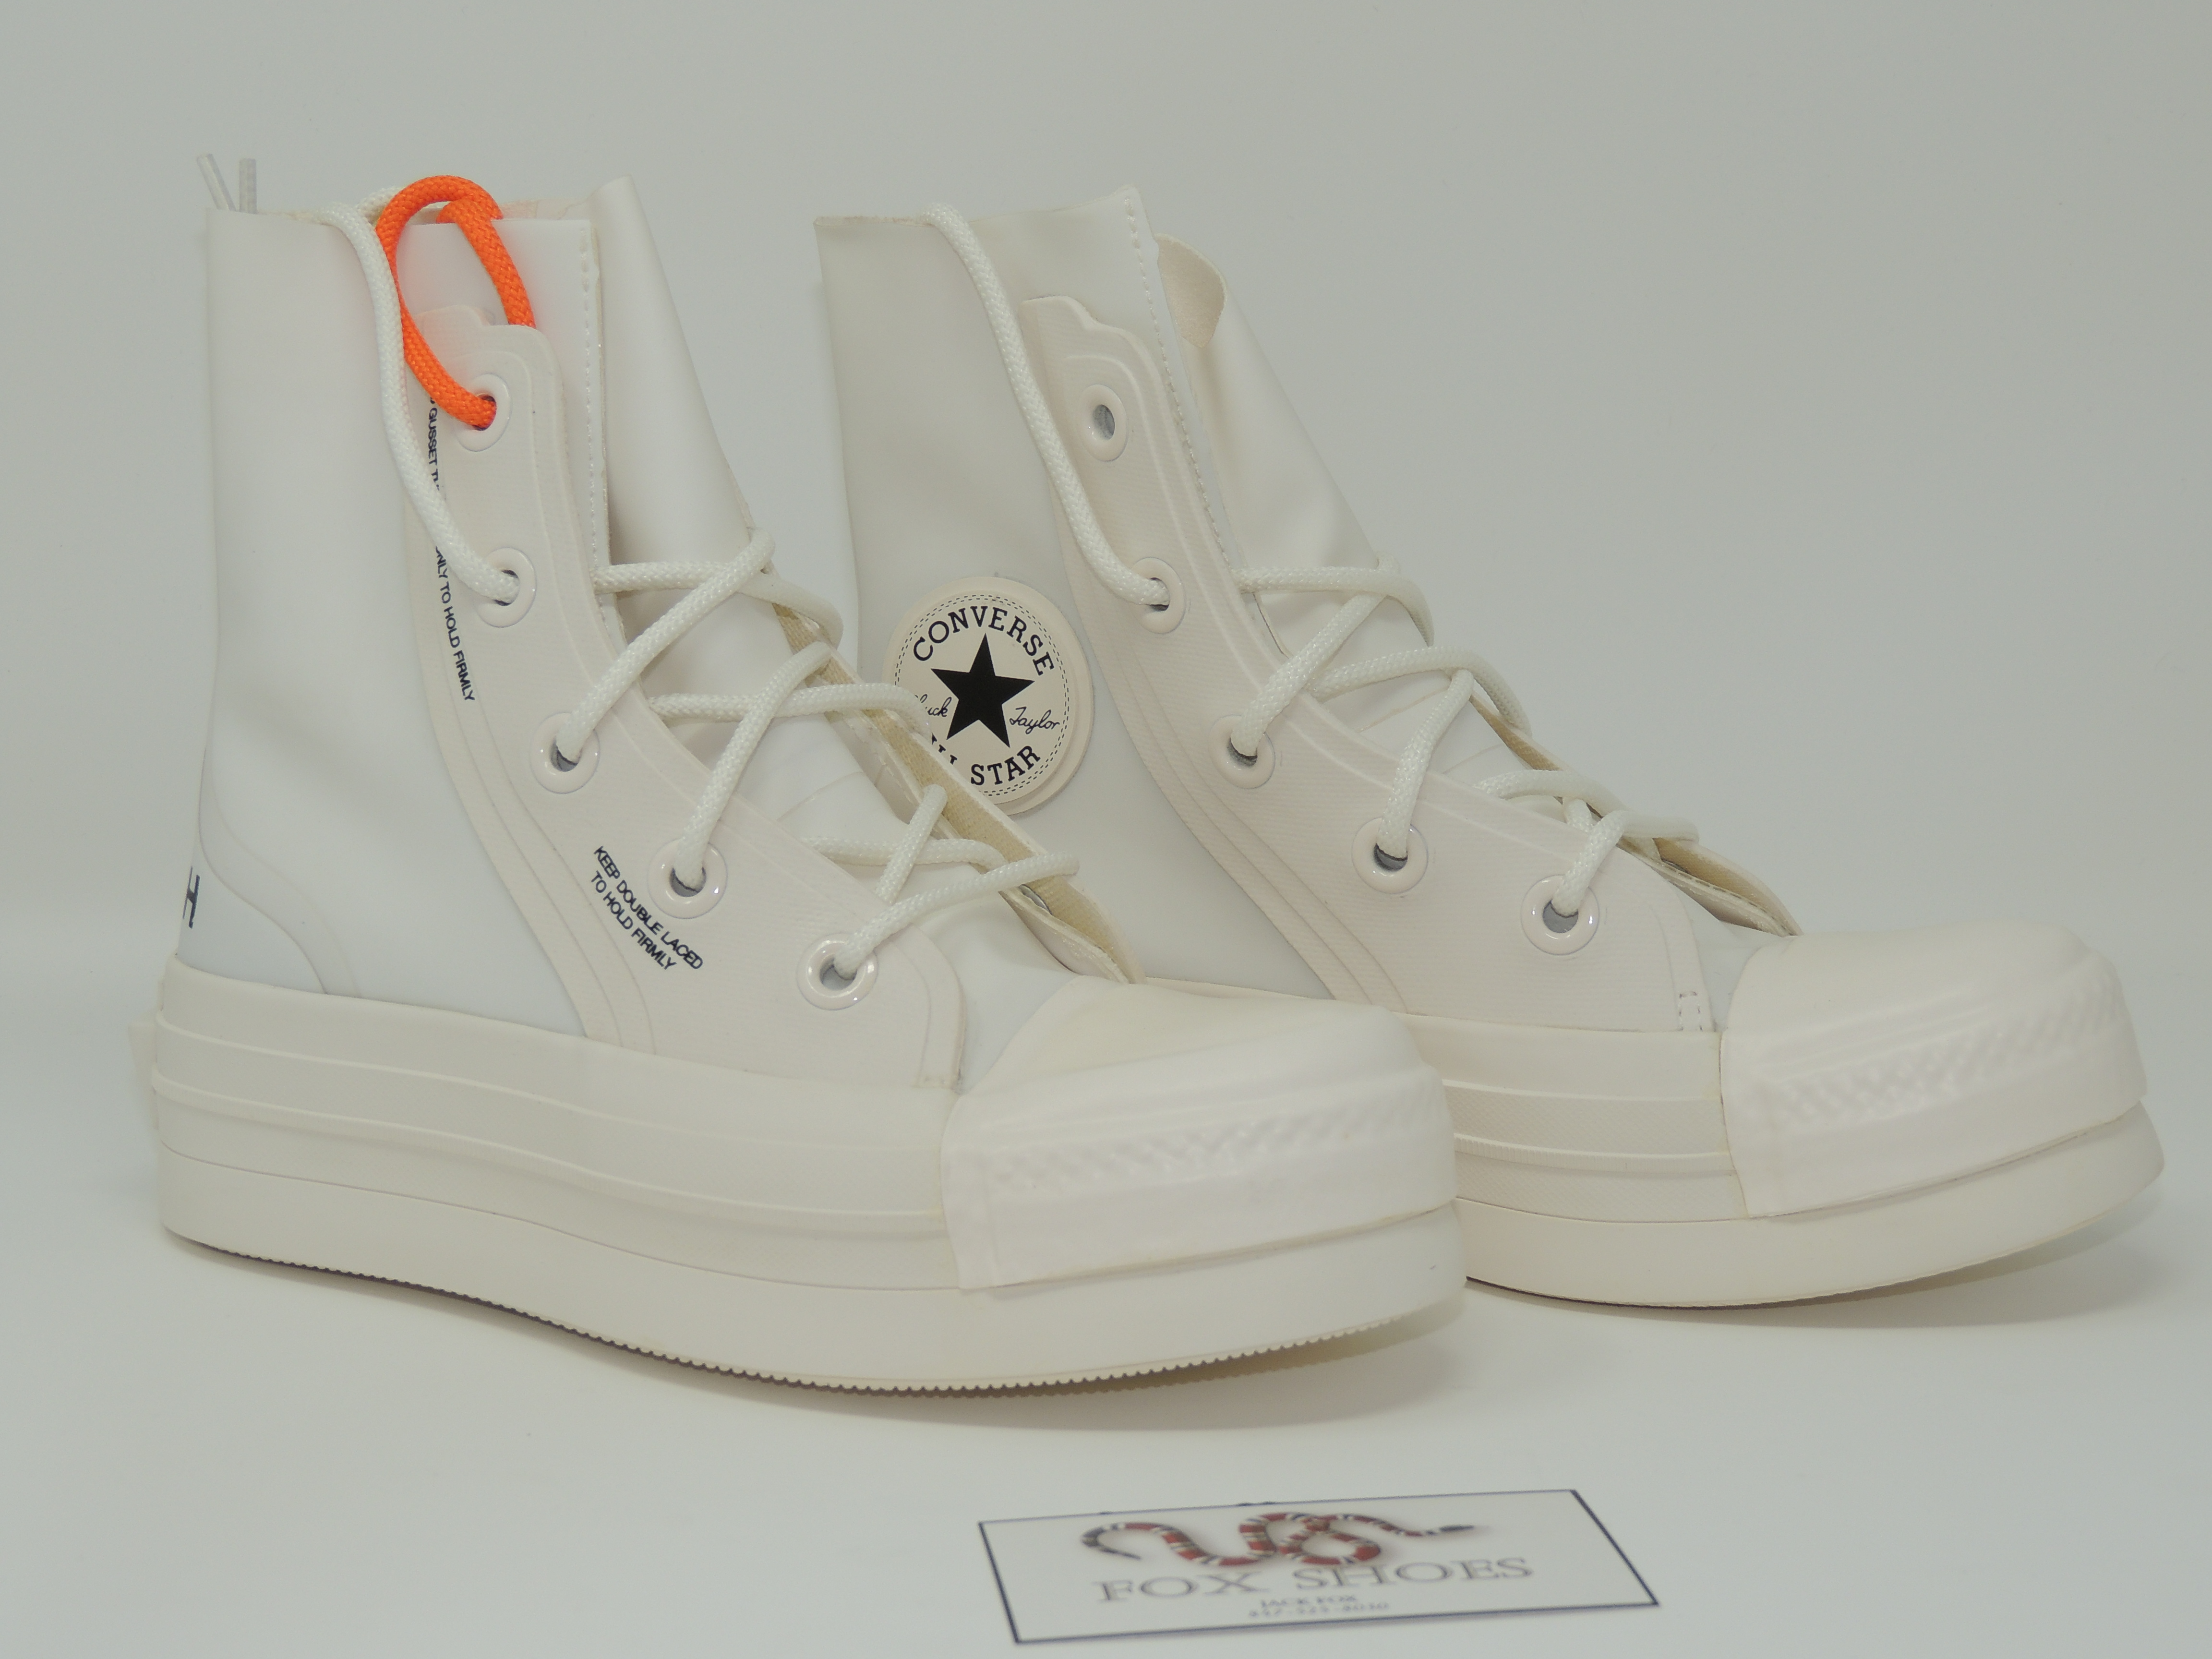 Converse Chuck Taylor All-Star 70s Hi Ambush White